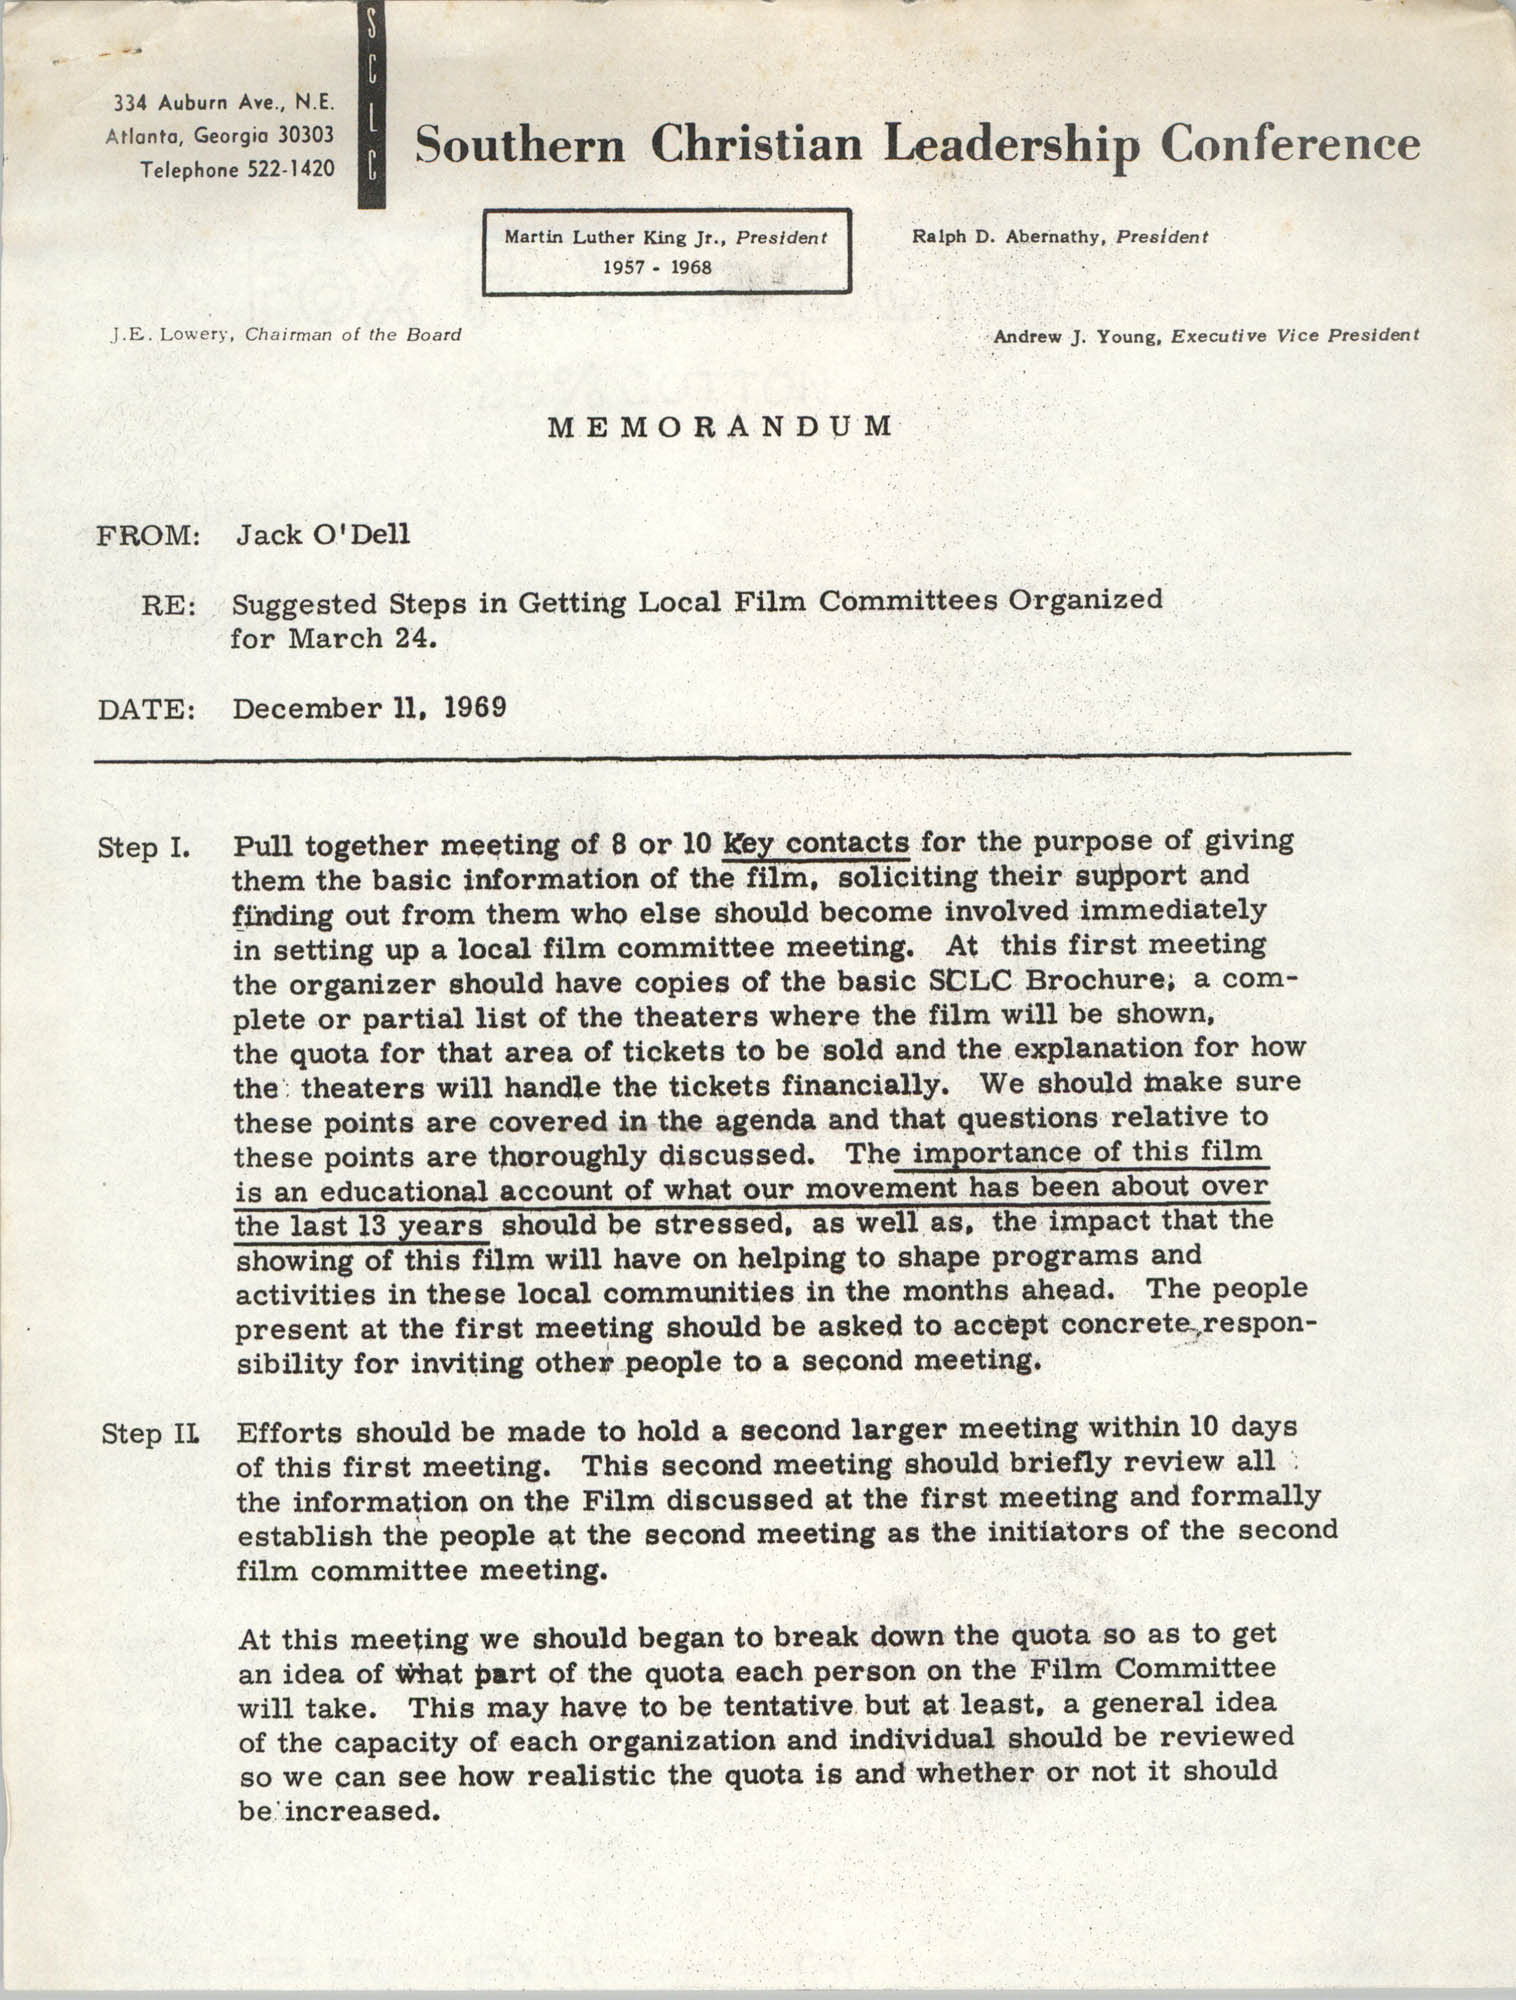 Memorandum from Jack O'Dell to Souther Christian Leadership Conference, December 11, 1969